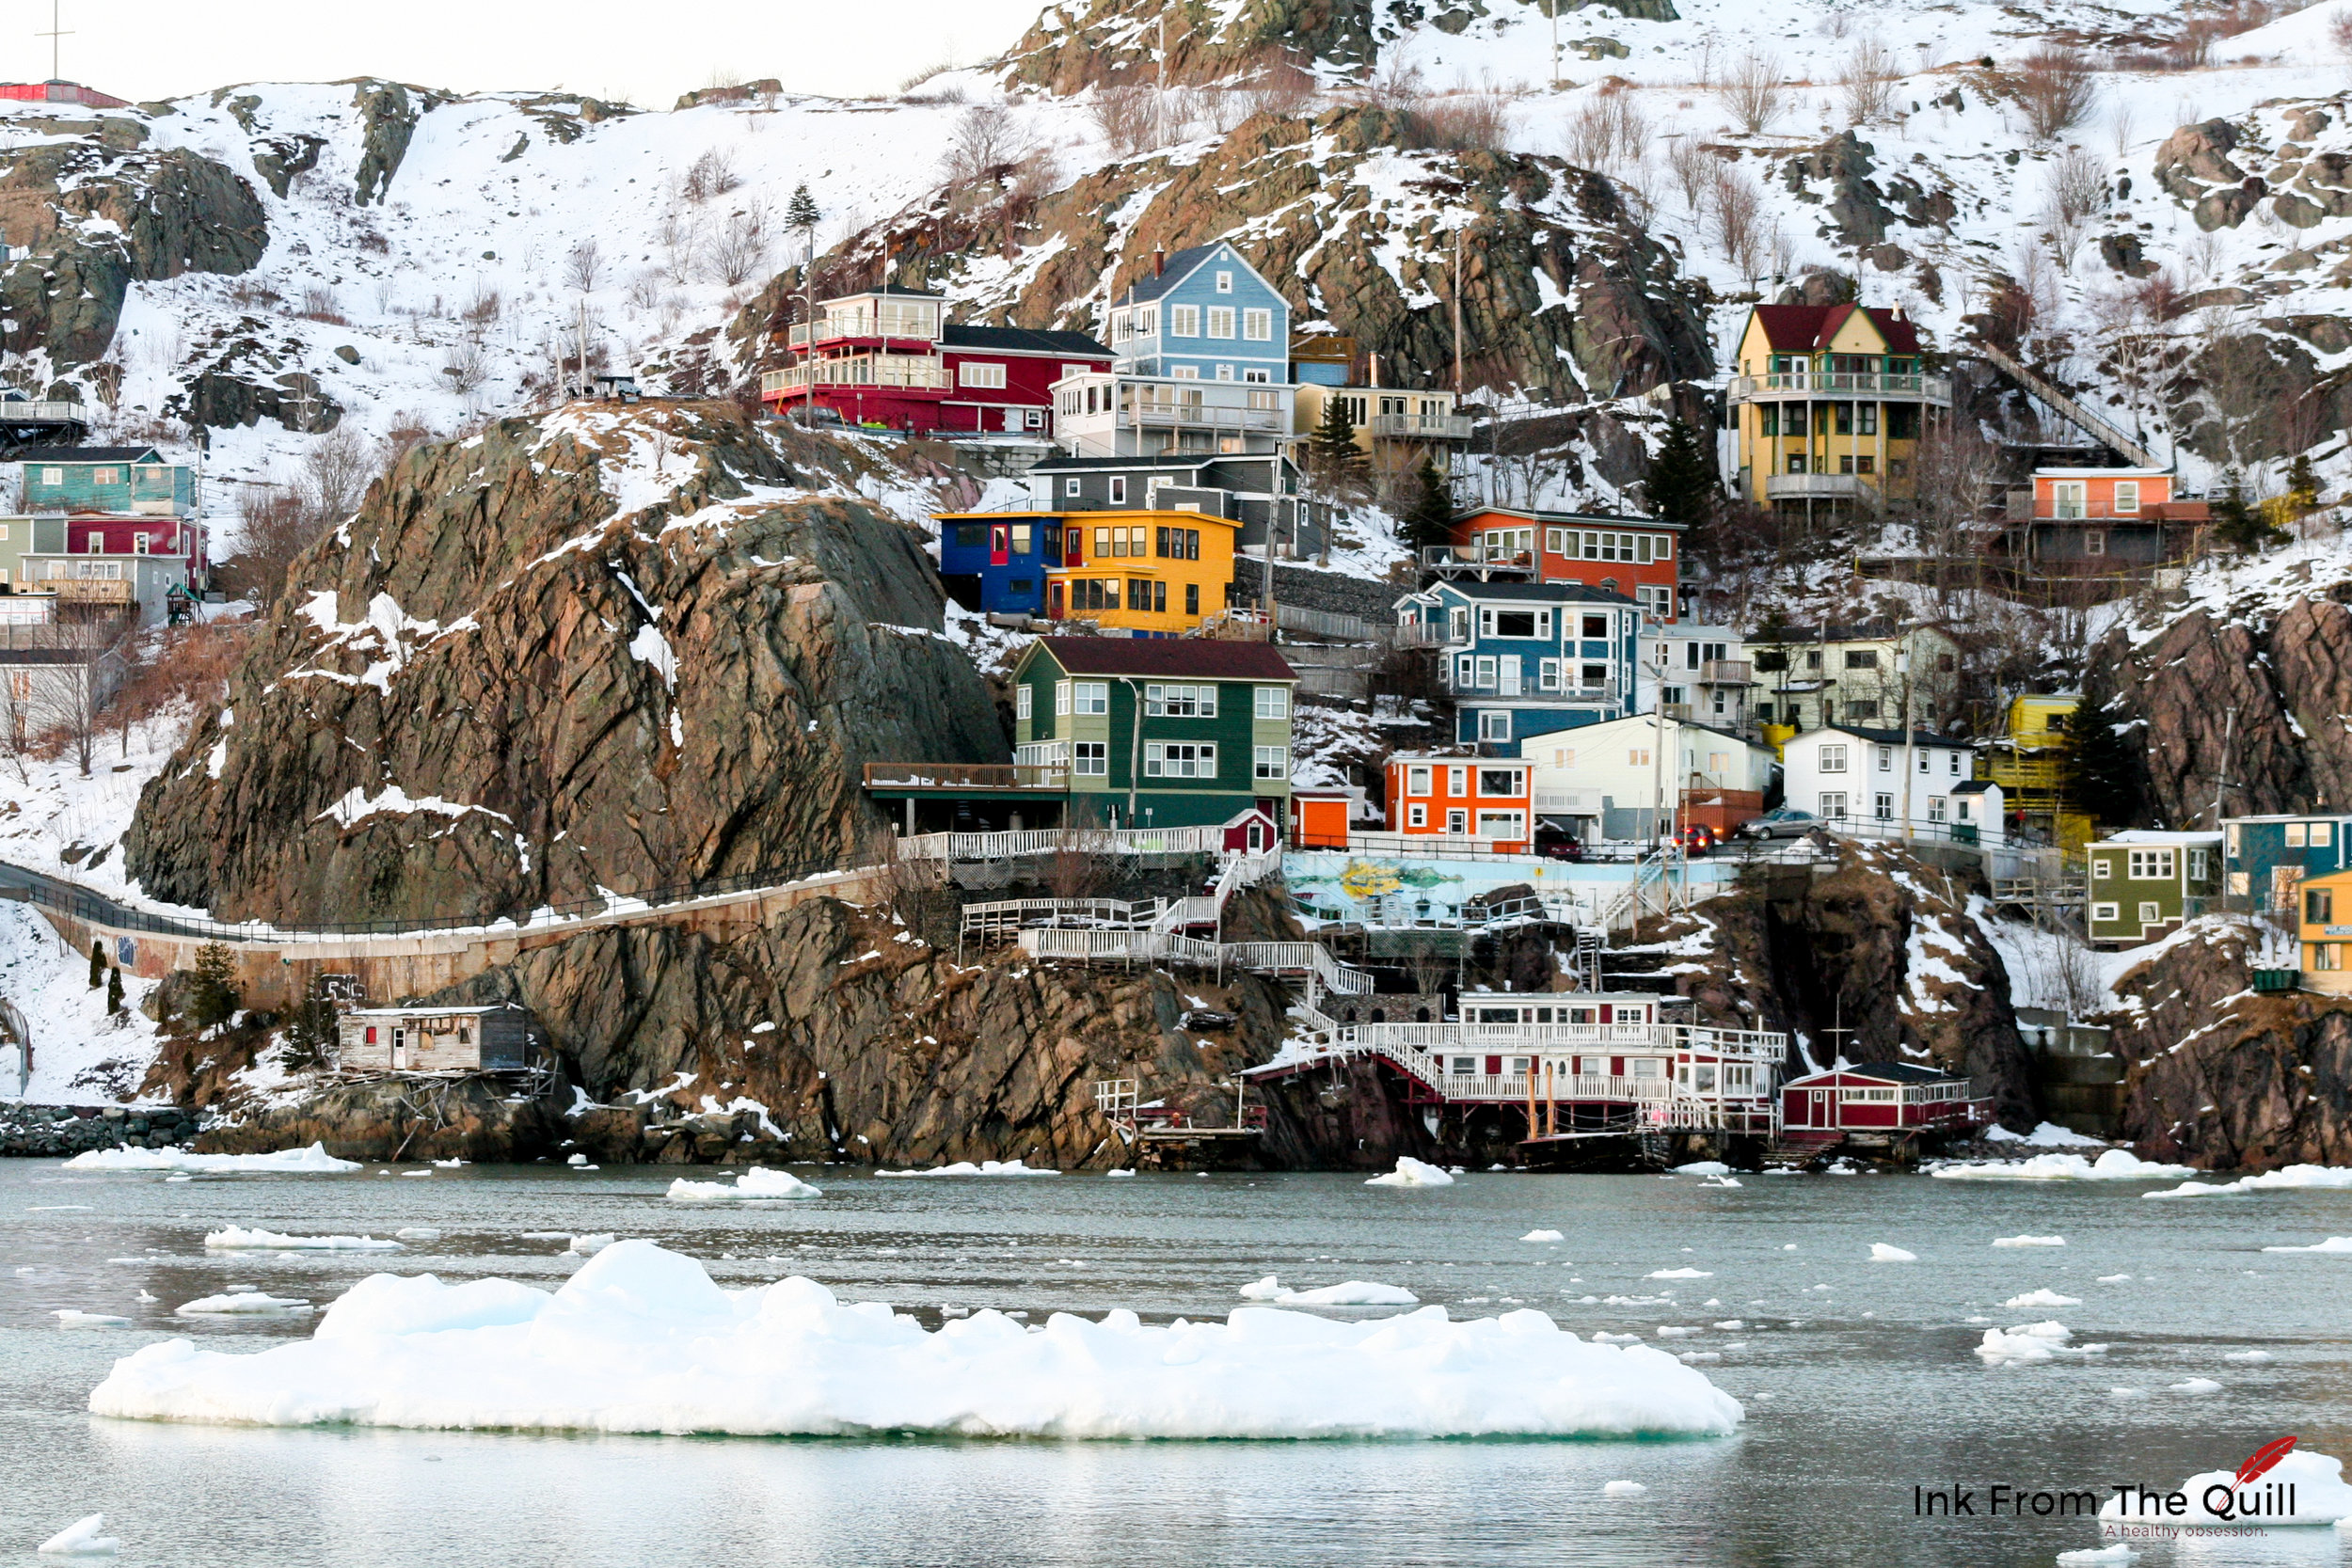 Sea ice in the St. John's harbour - The Battery in the background